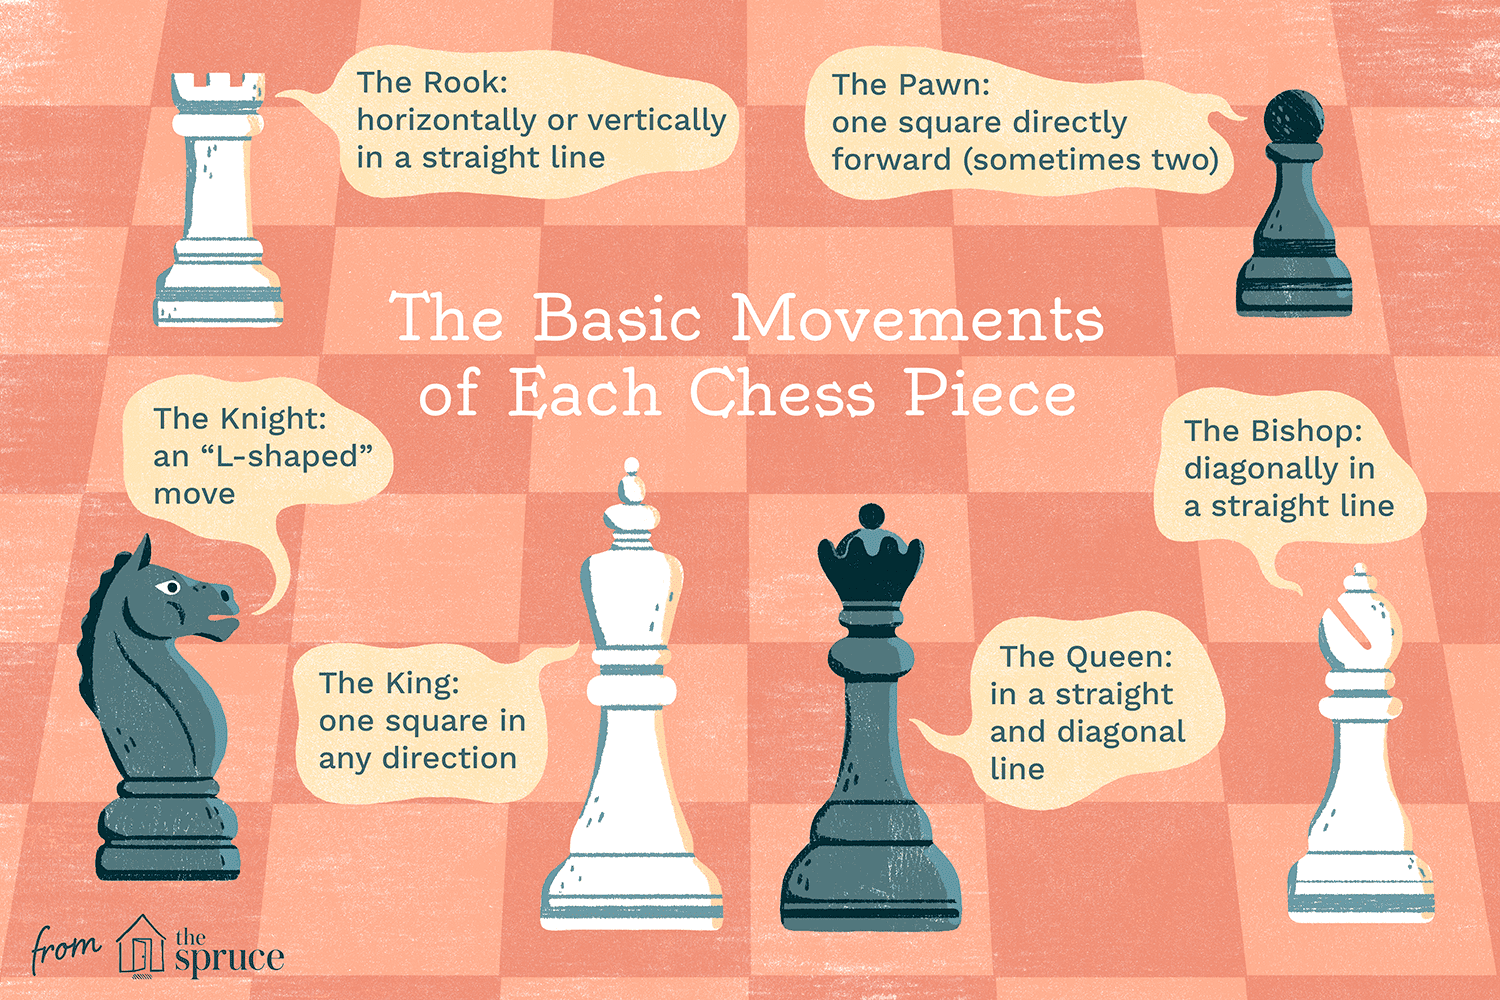 Illustration of chess pieces and their movements